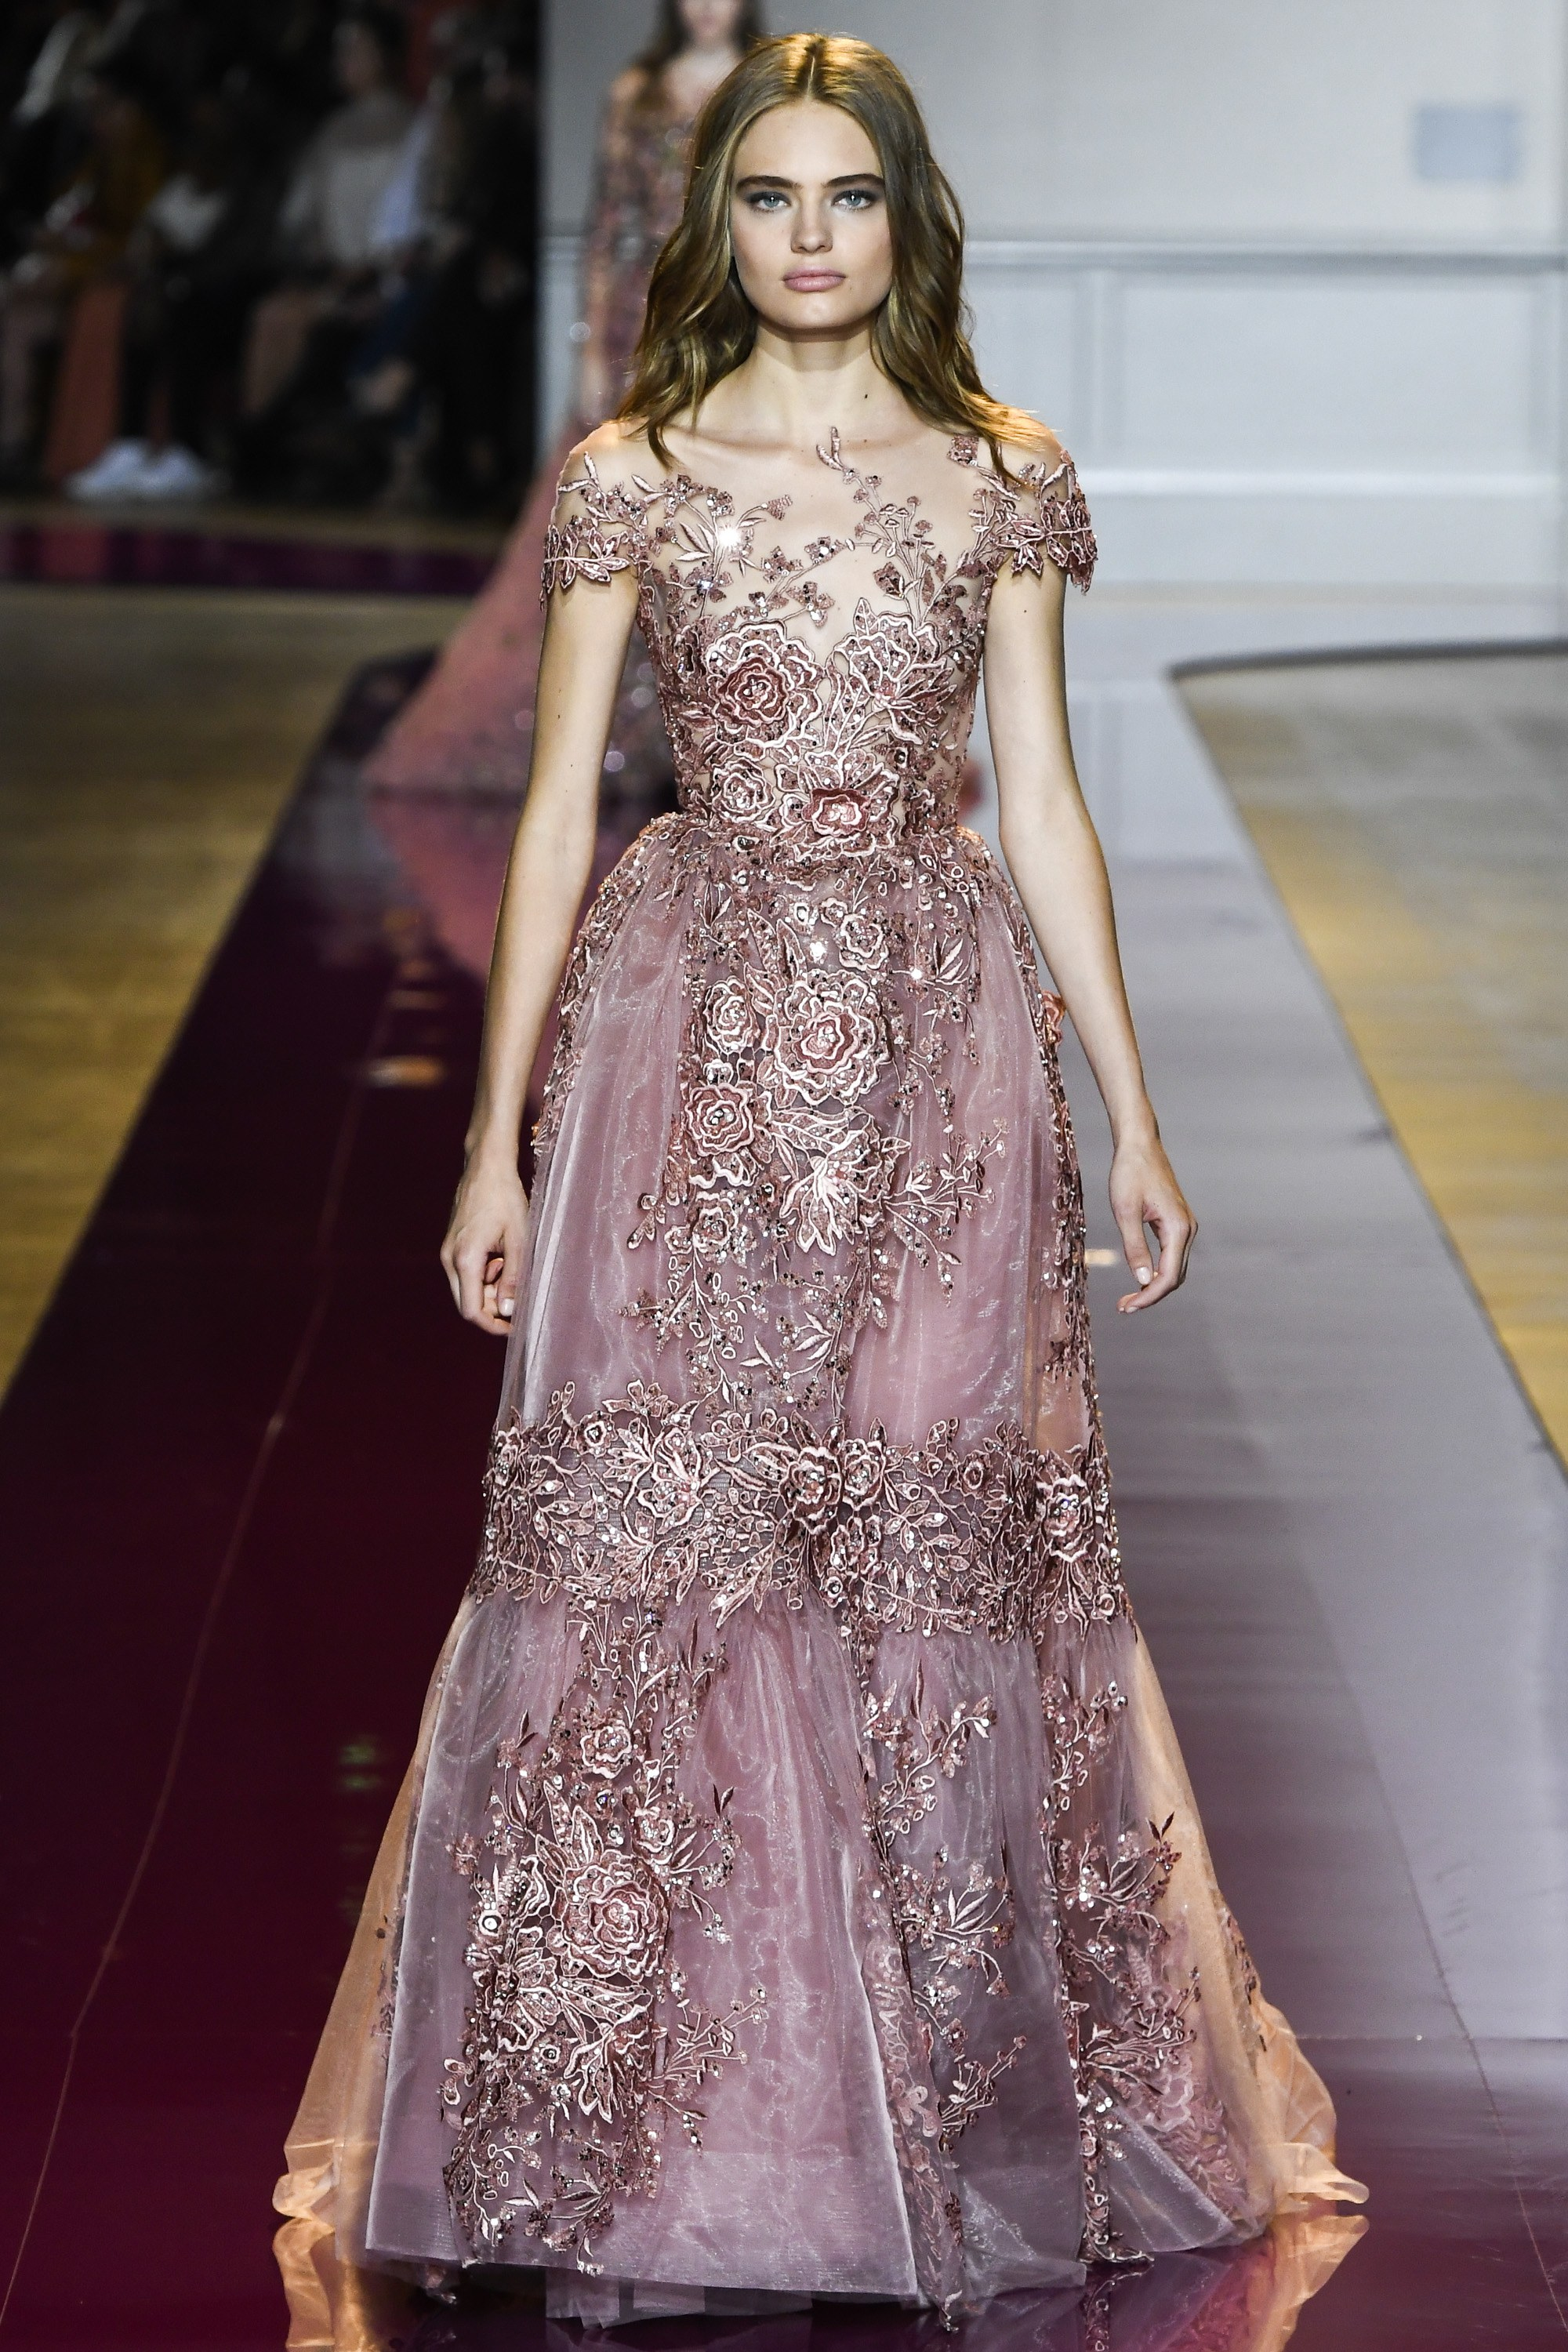 d79924fd6ad Zuhair Murad Fall 2016 Couture - Black Style Report